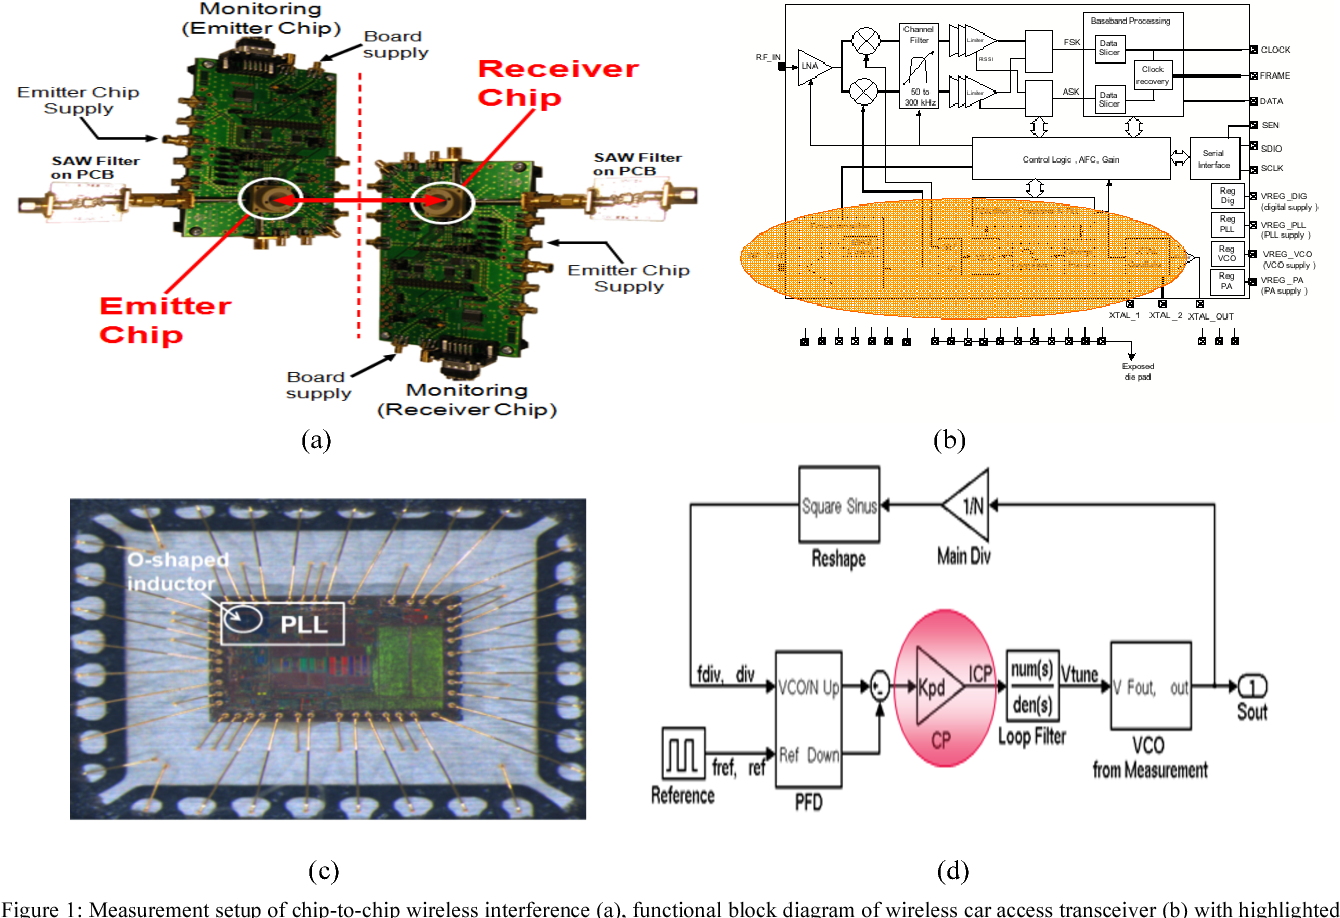 Figure 1: Measurement setup of chip-to-chip wireless interference (a)